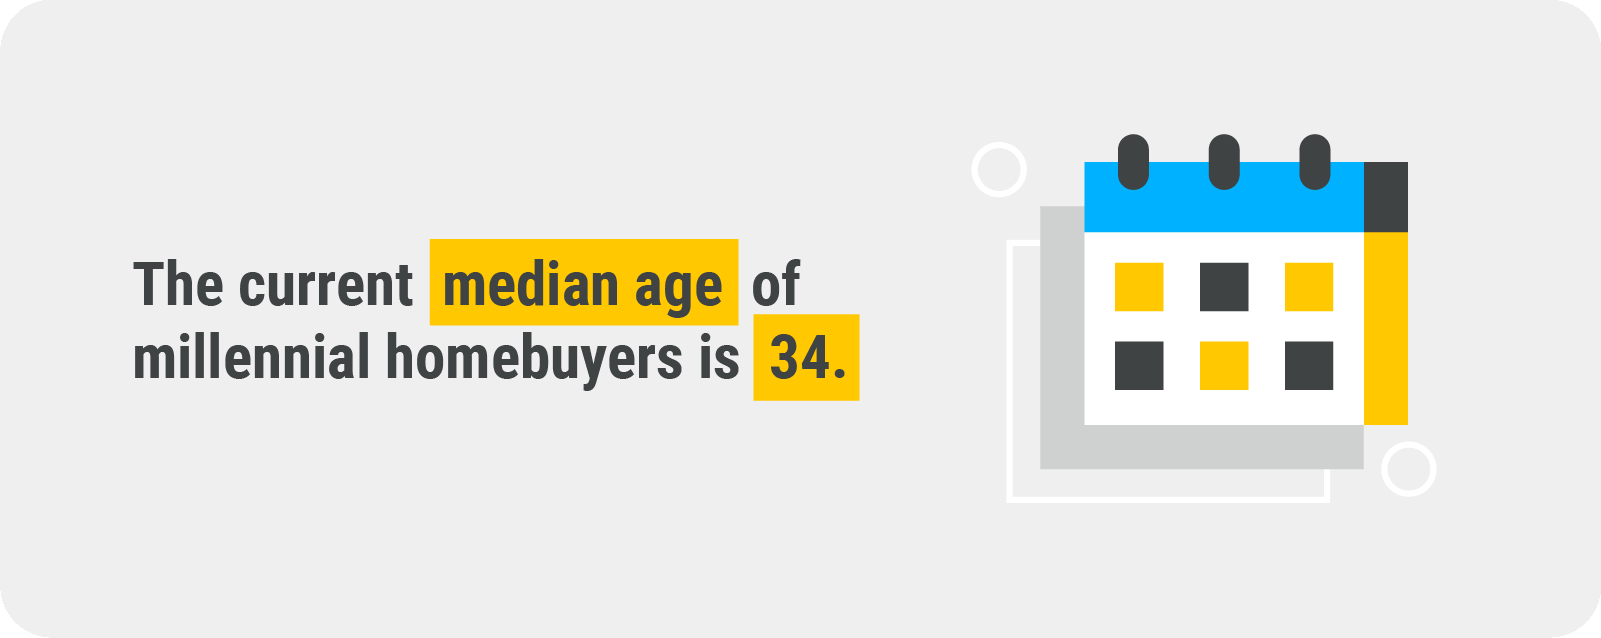 the median age of millennials is 34